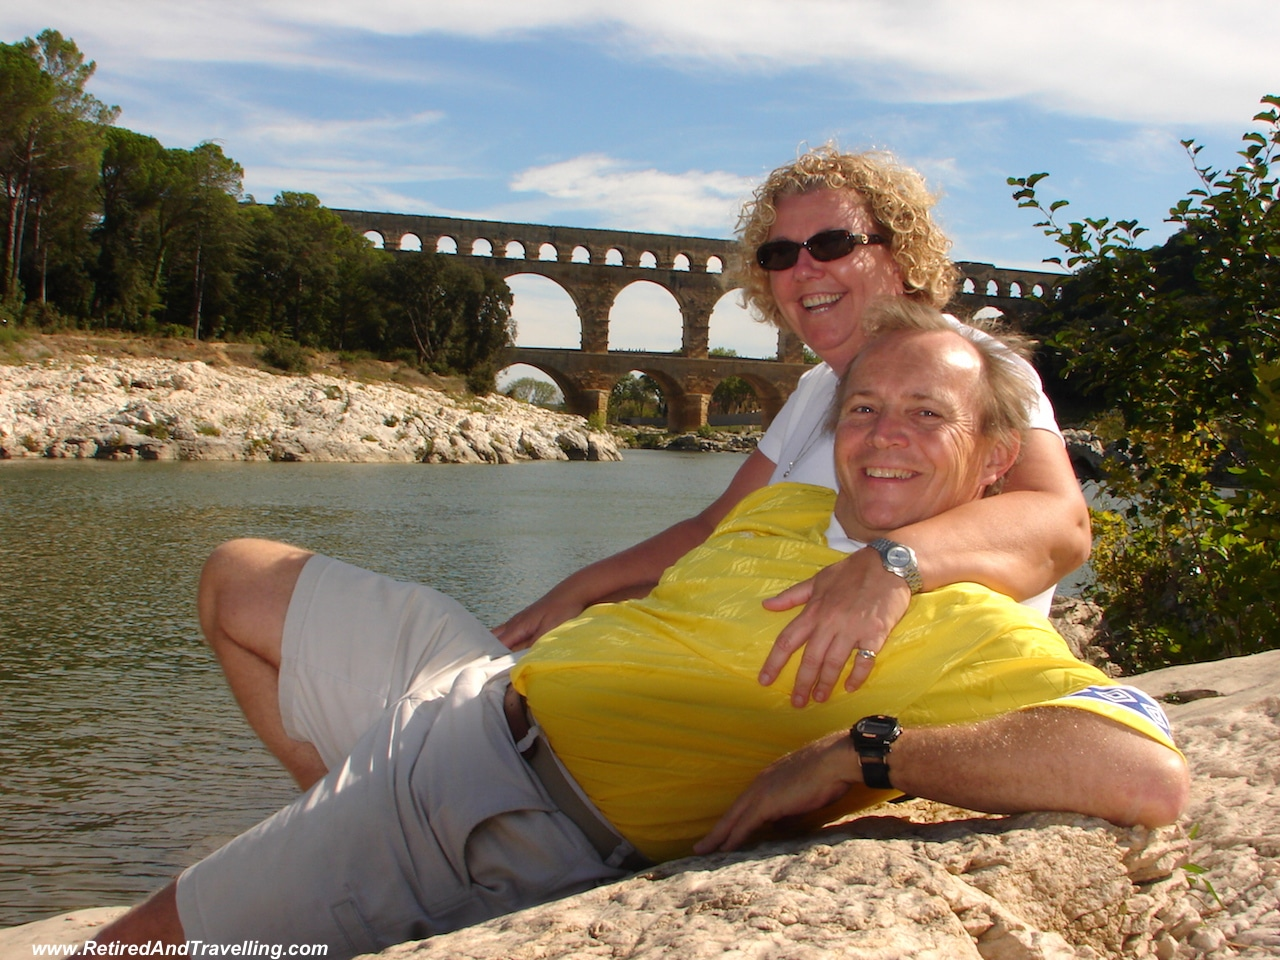 Lounging by the Pont du Garde in France!